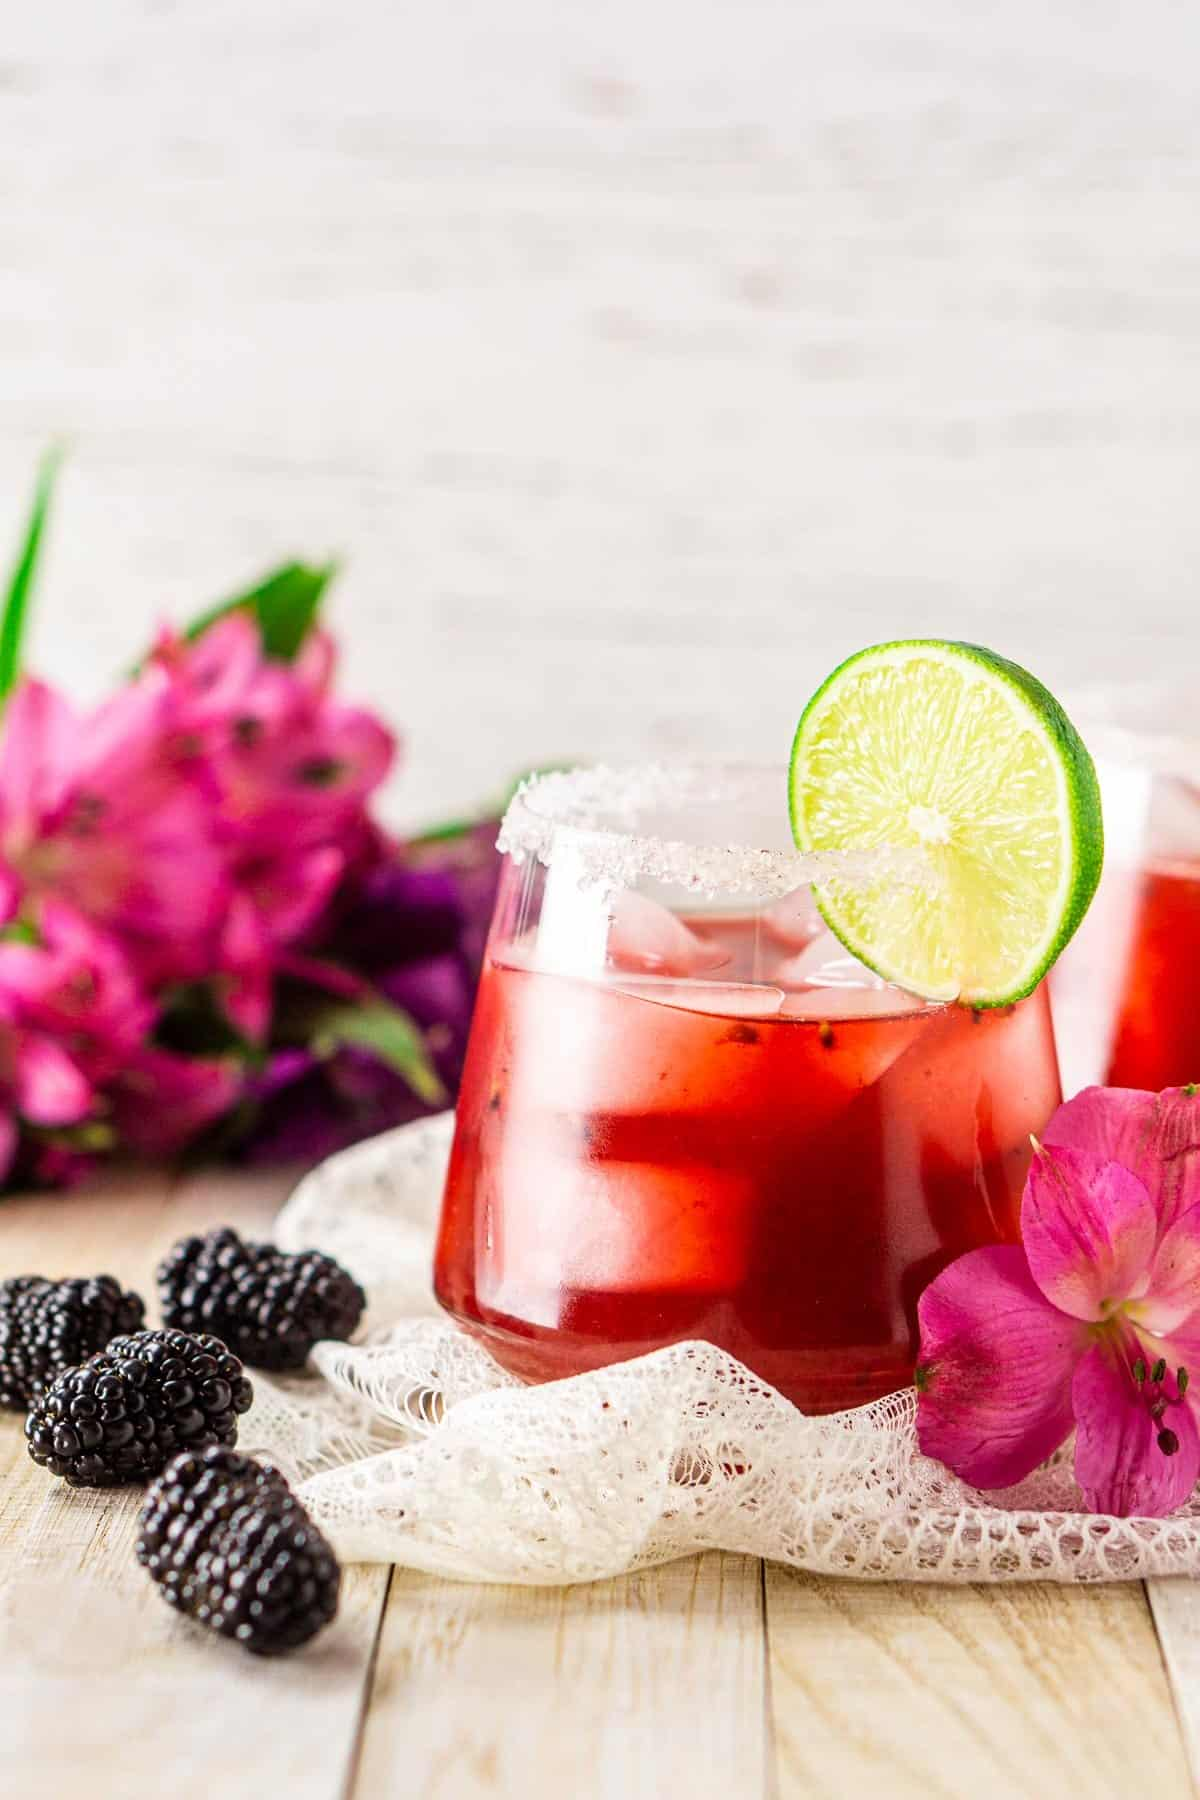 A blackberry margarita with a pink flower and blackberries to the side.